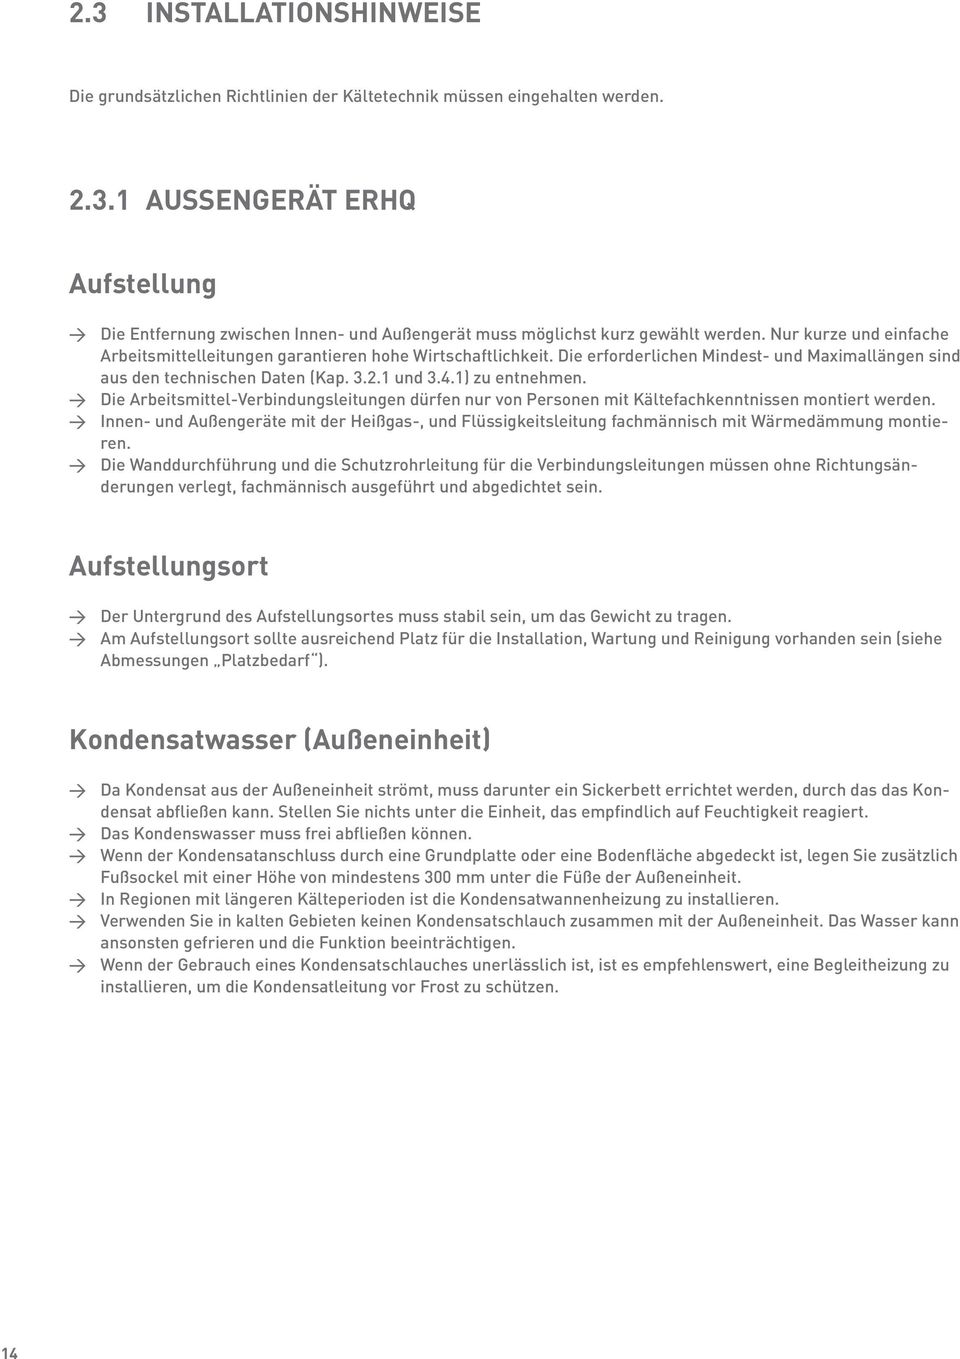 PLANUNGS- UNTERLAGE 2008/2009 ALTHERMA LUVITYPE - PDF